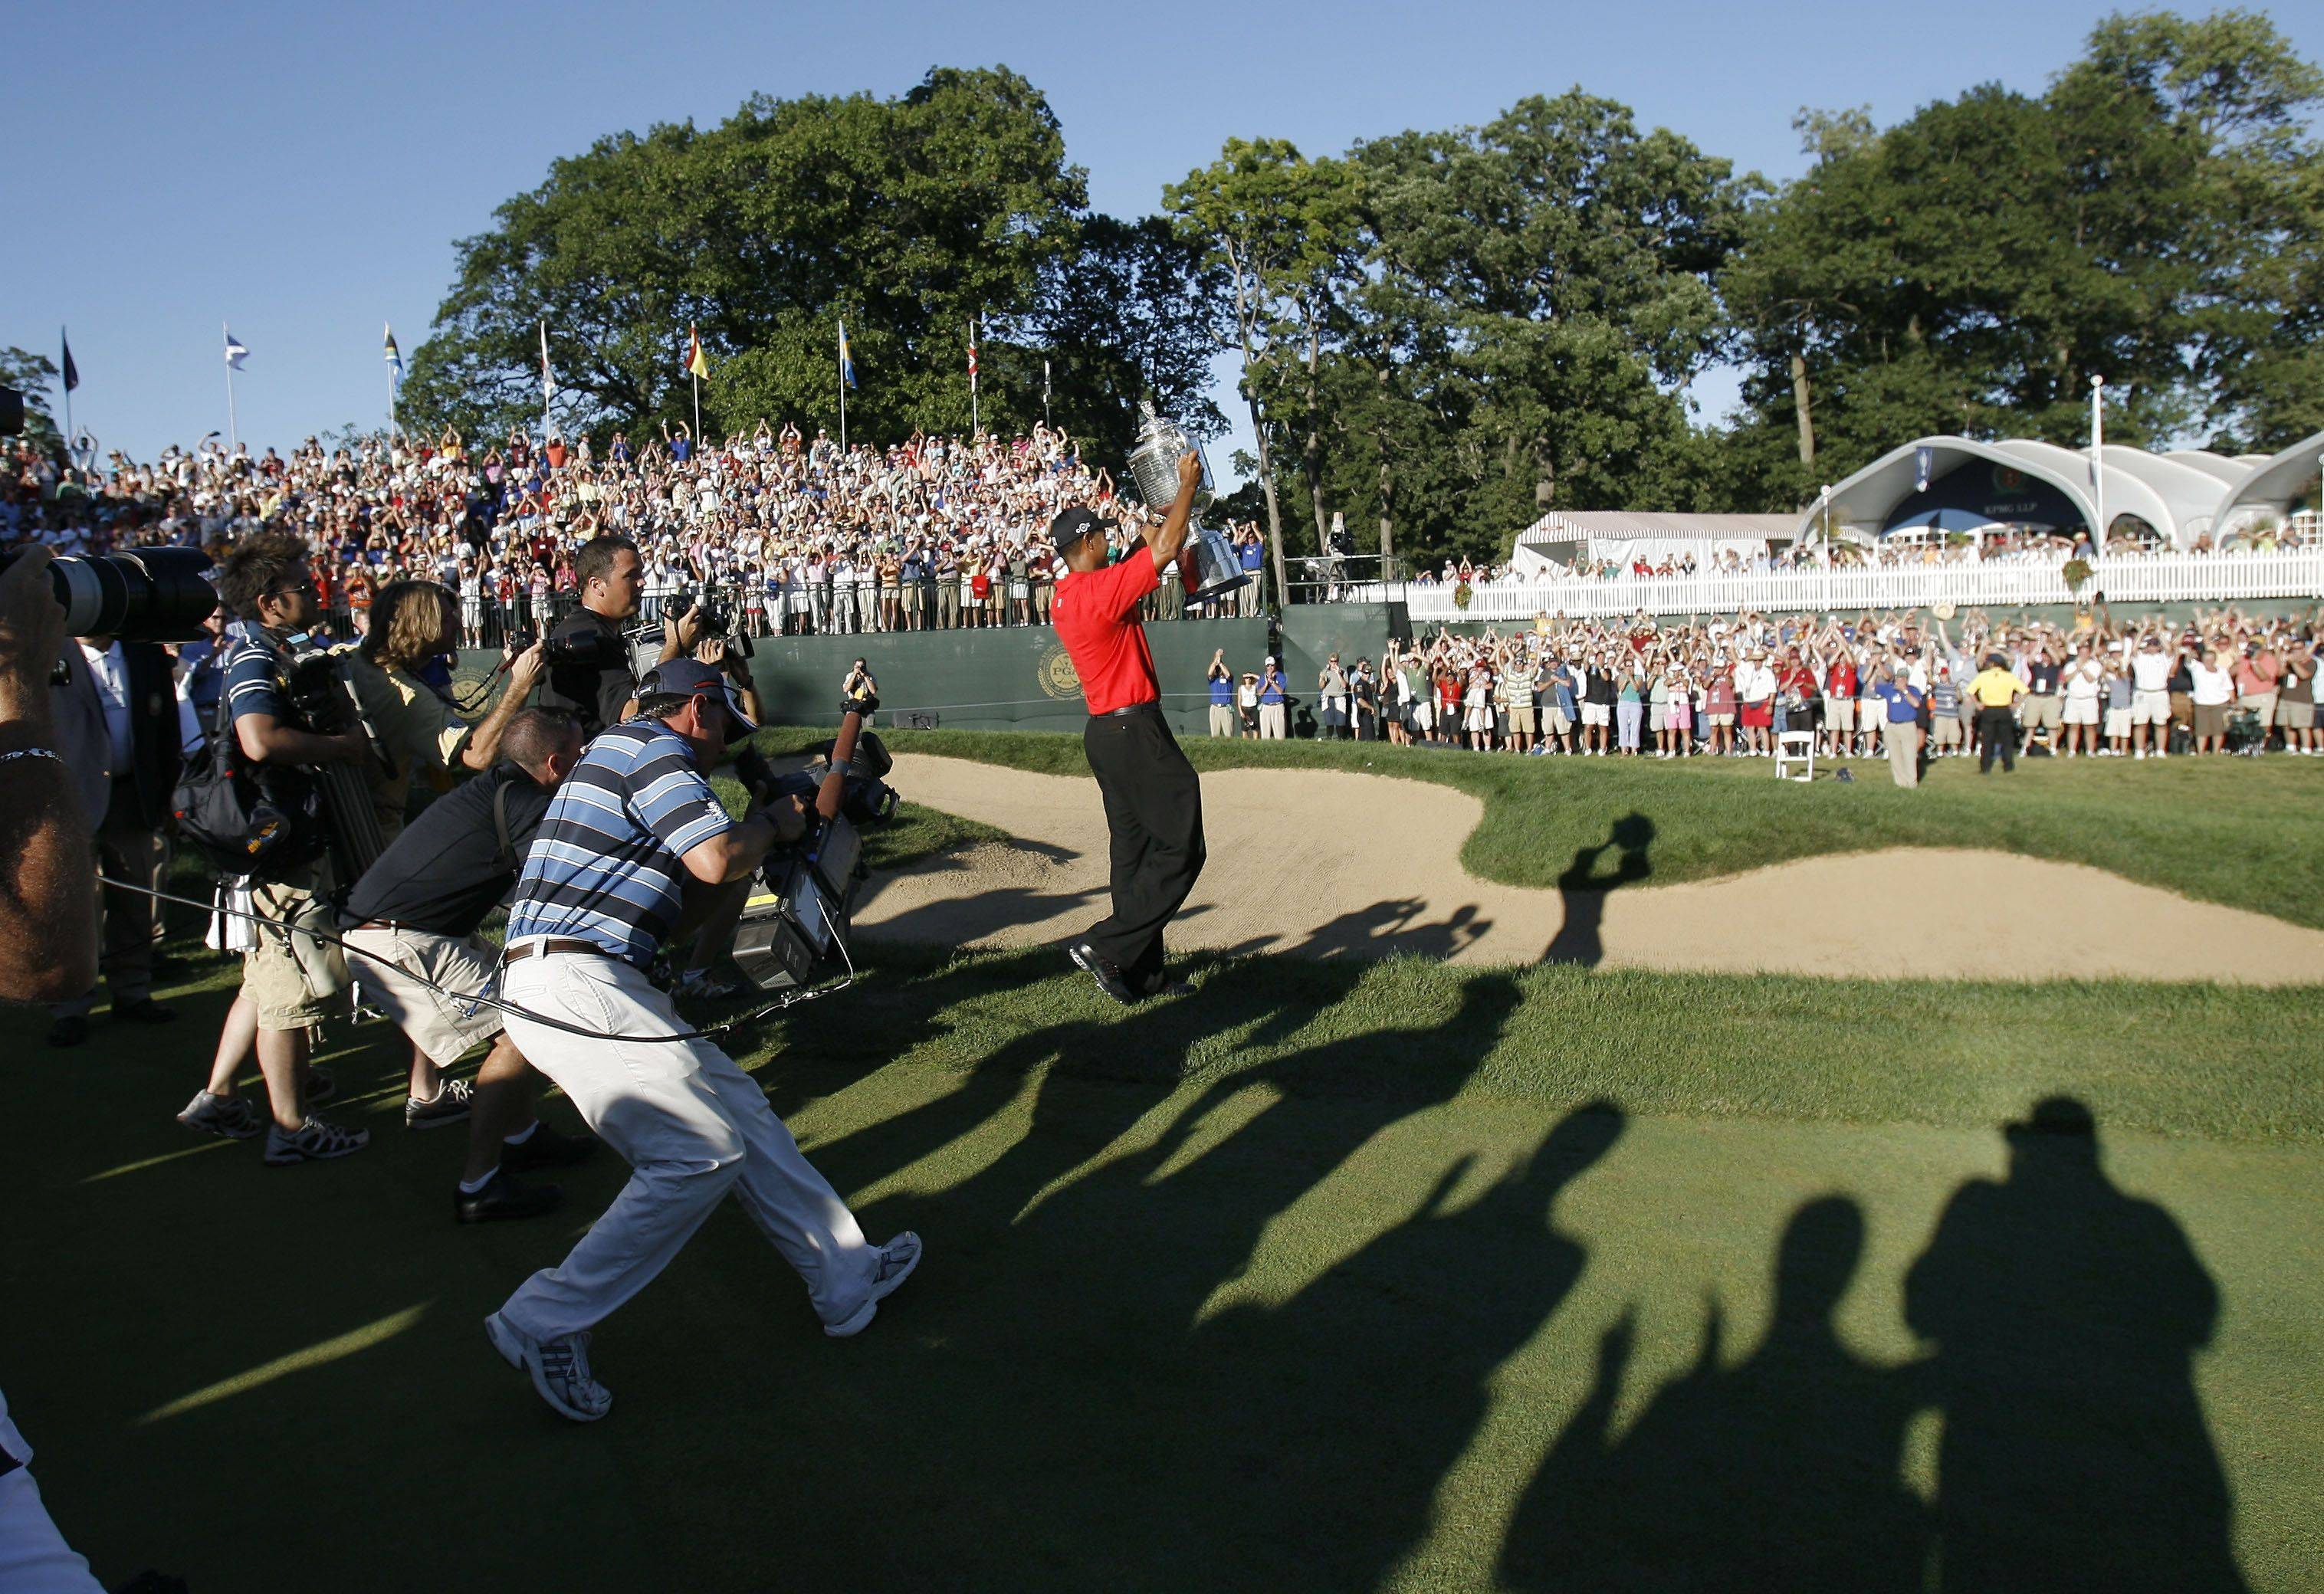 Lake Park to close for Ryder Cup in '12